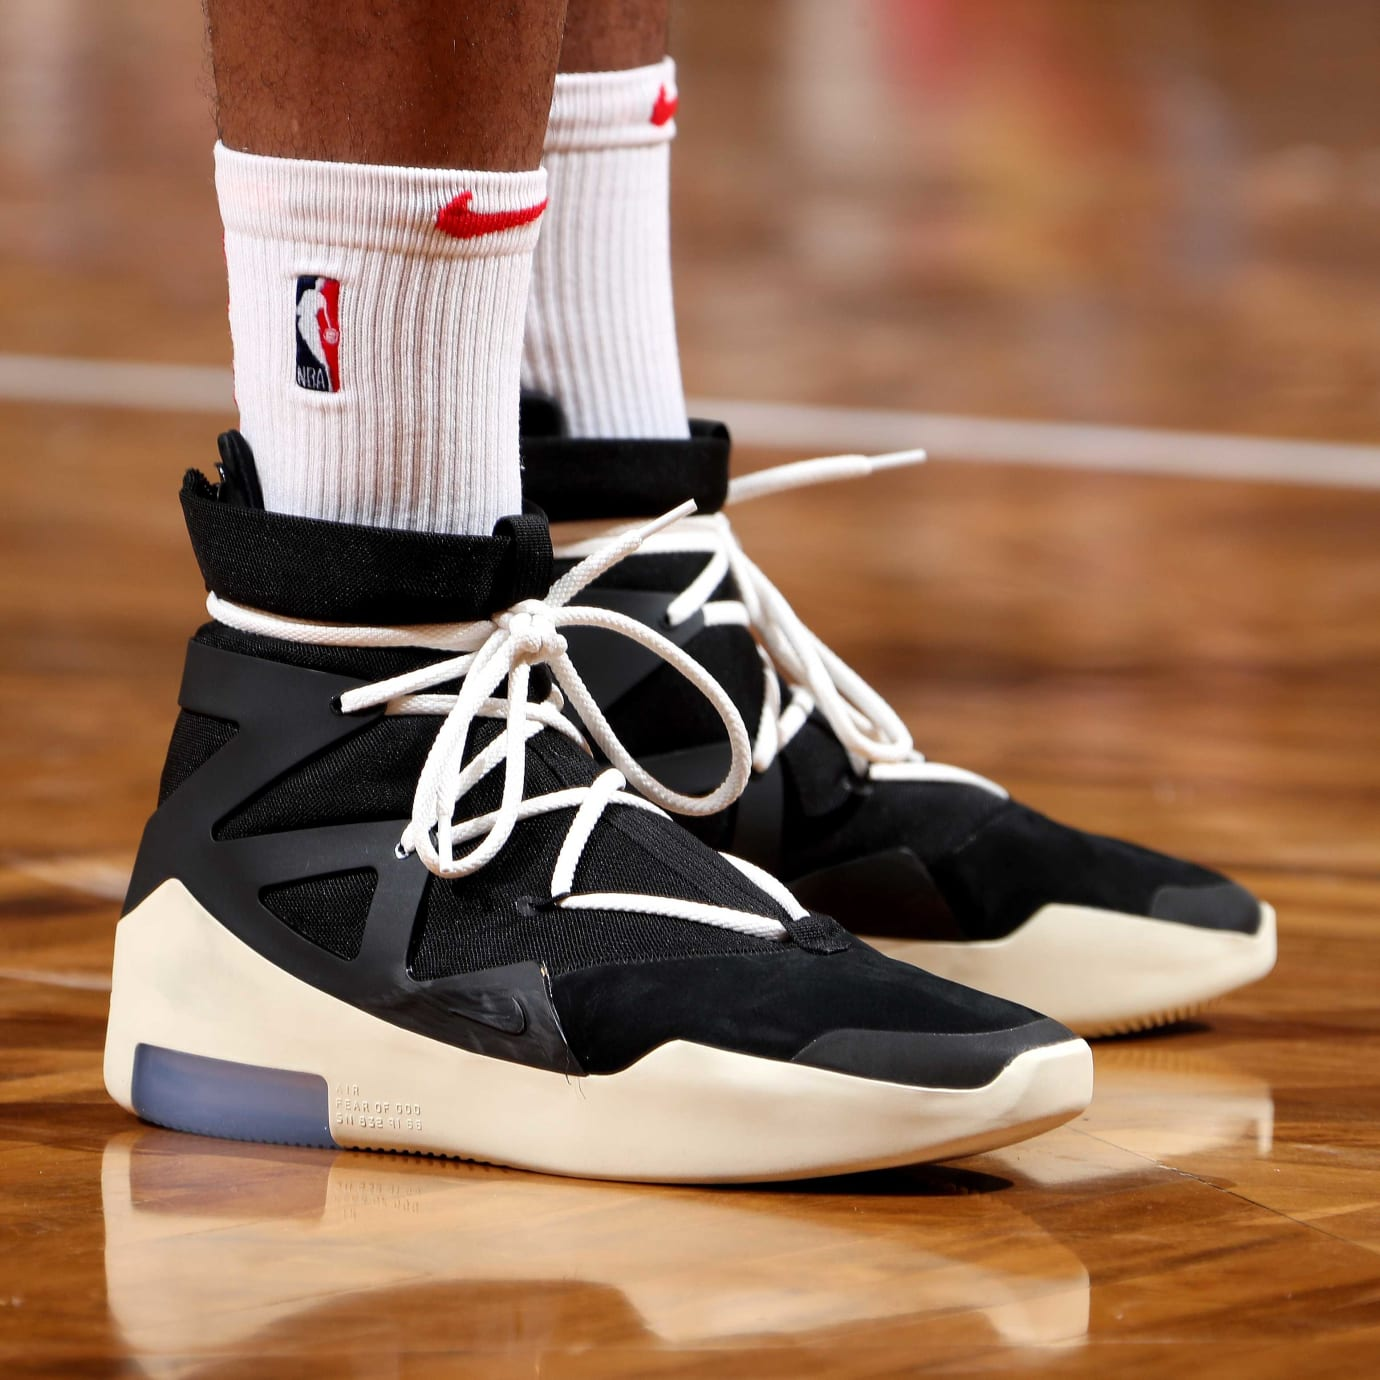 79bcd918738 P.J. Tucker Debuts Jerry Lorenzo Nike Air Fear of God